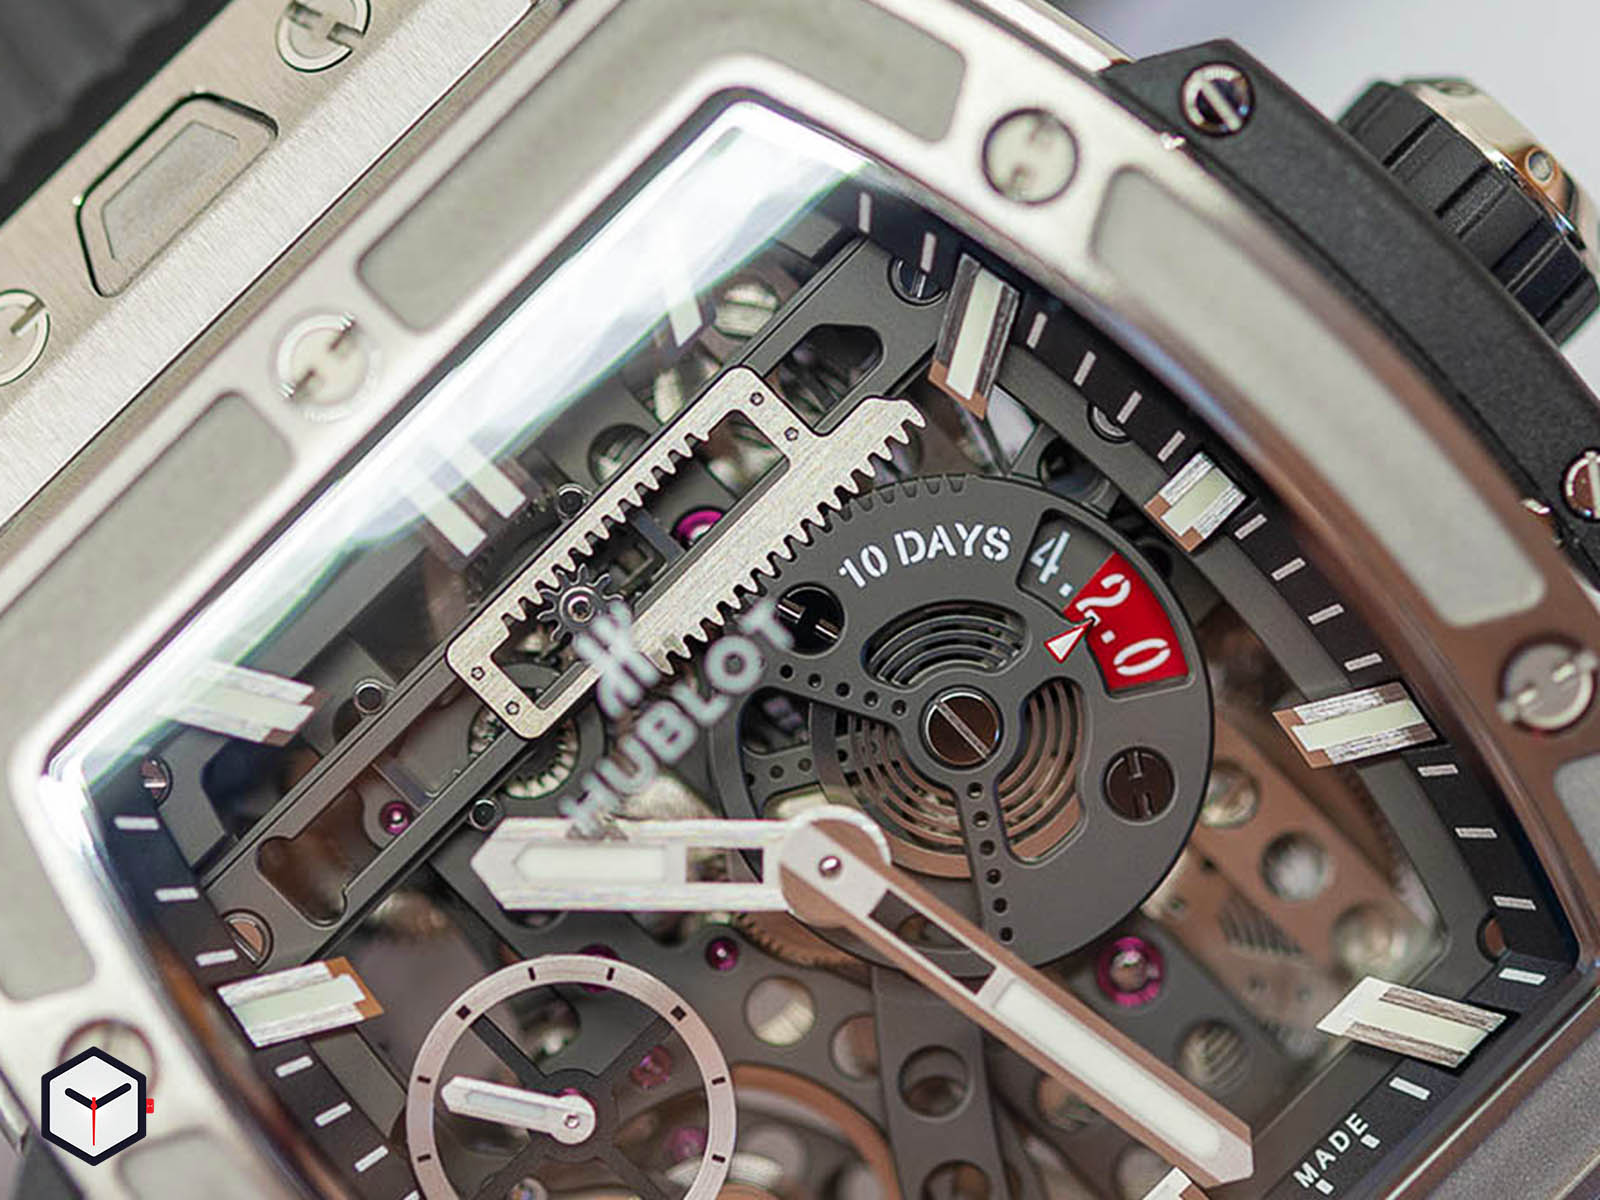 hublot-spirit-of-big-bang-meca-10-4.jpg